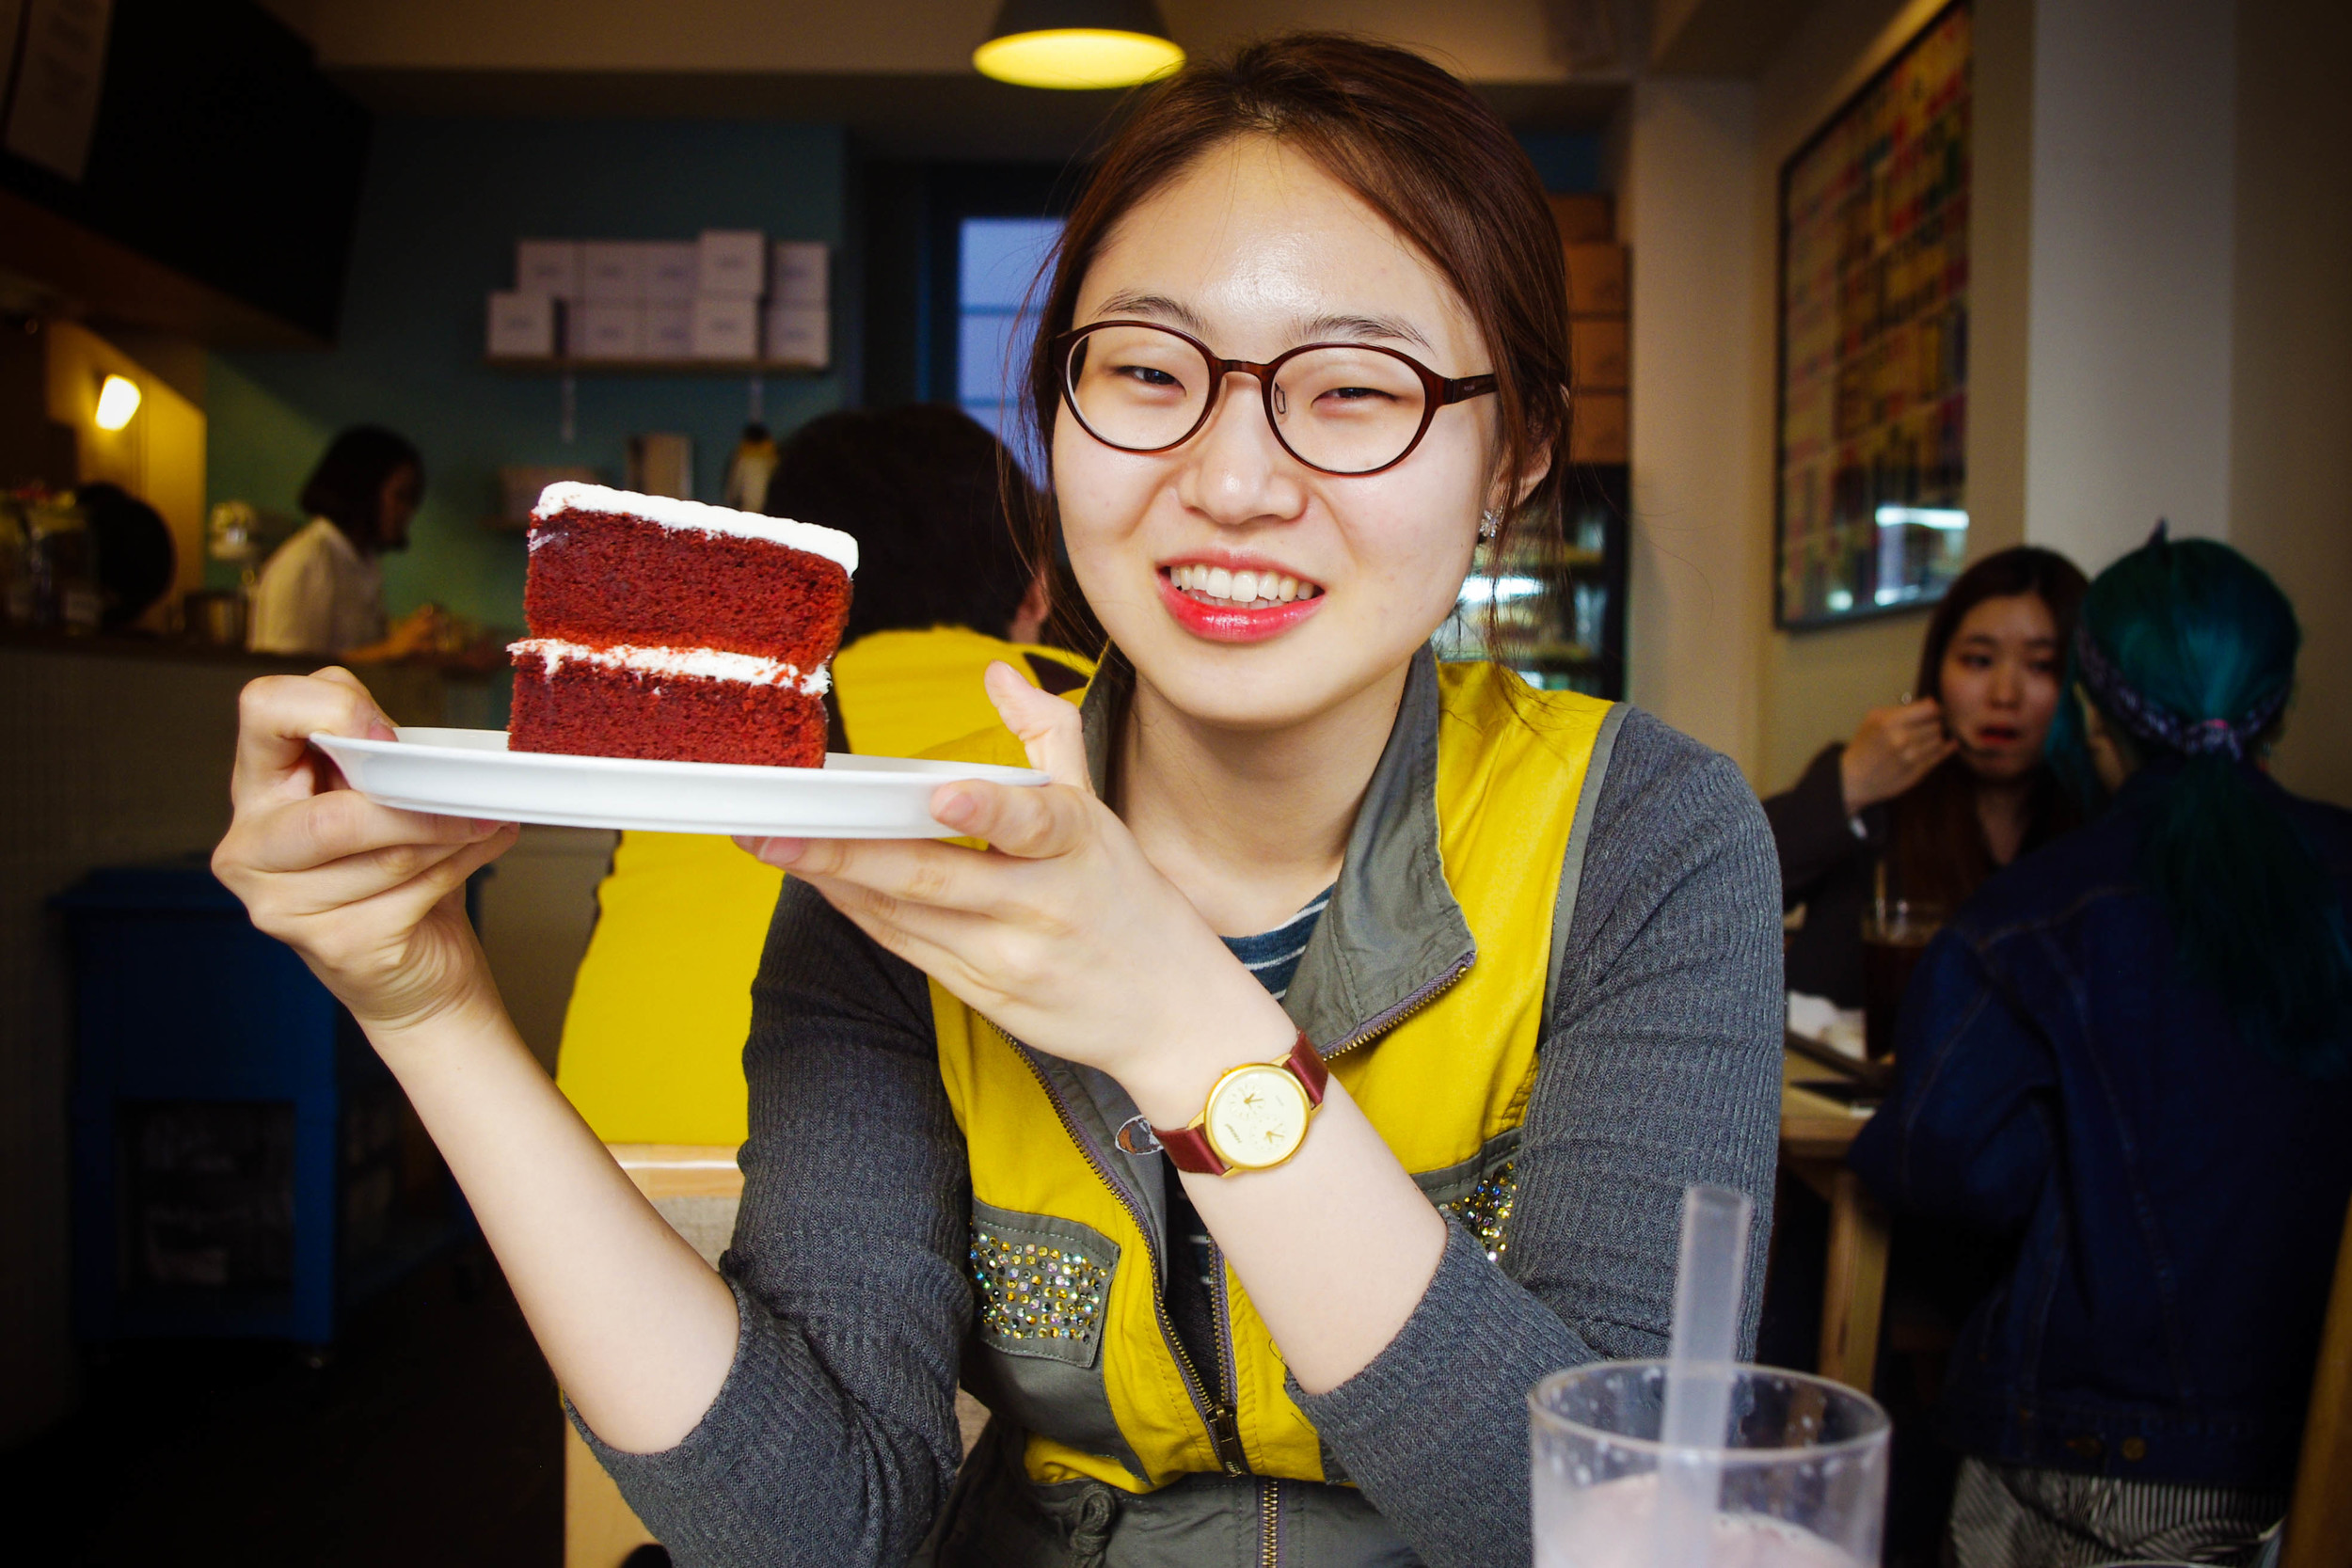 Juhong with the beautiful slice of cake.